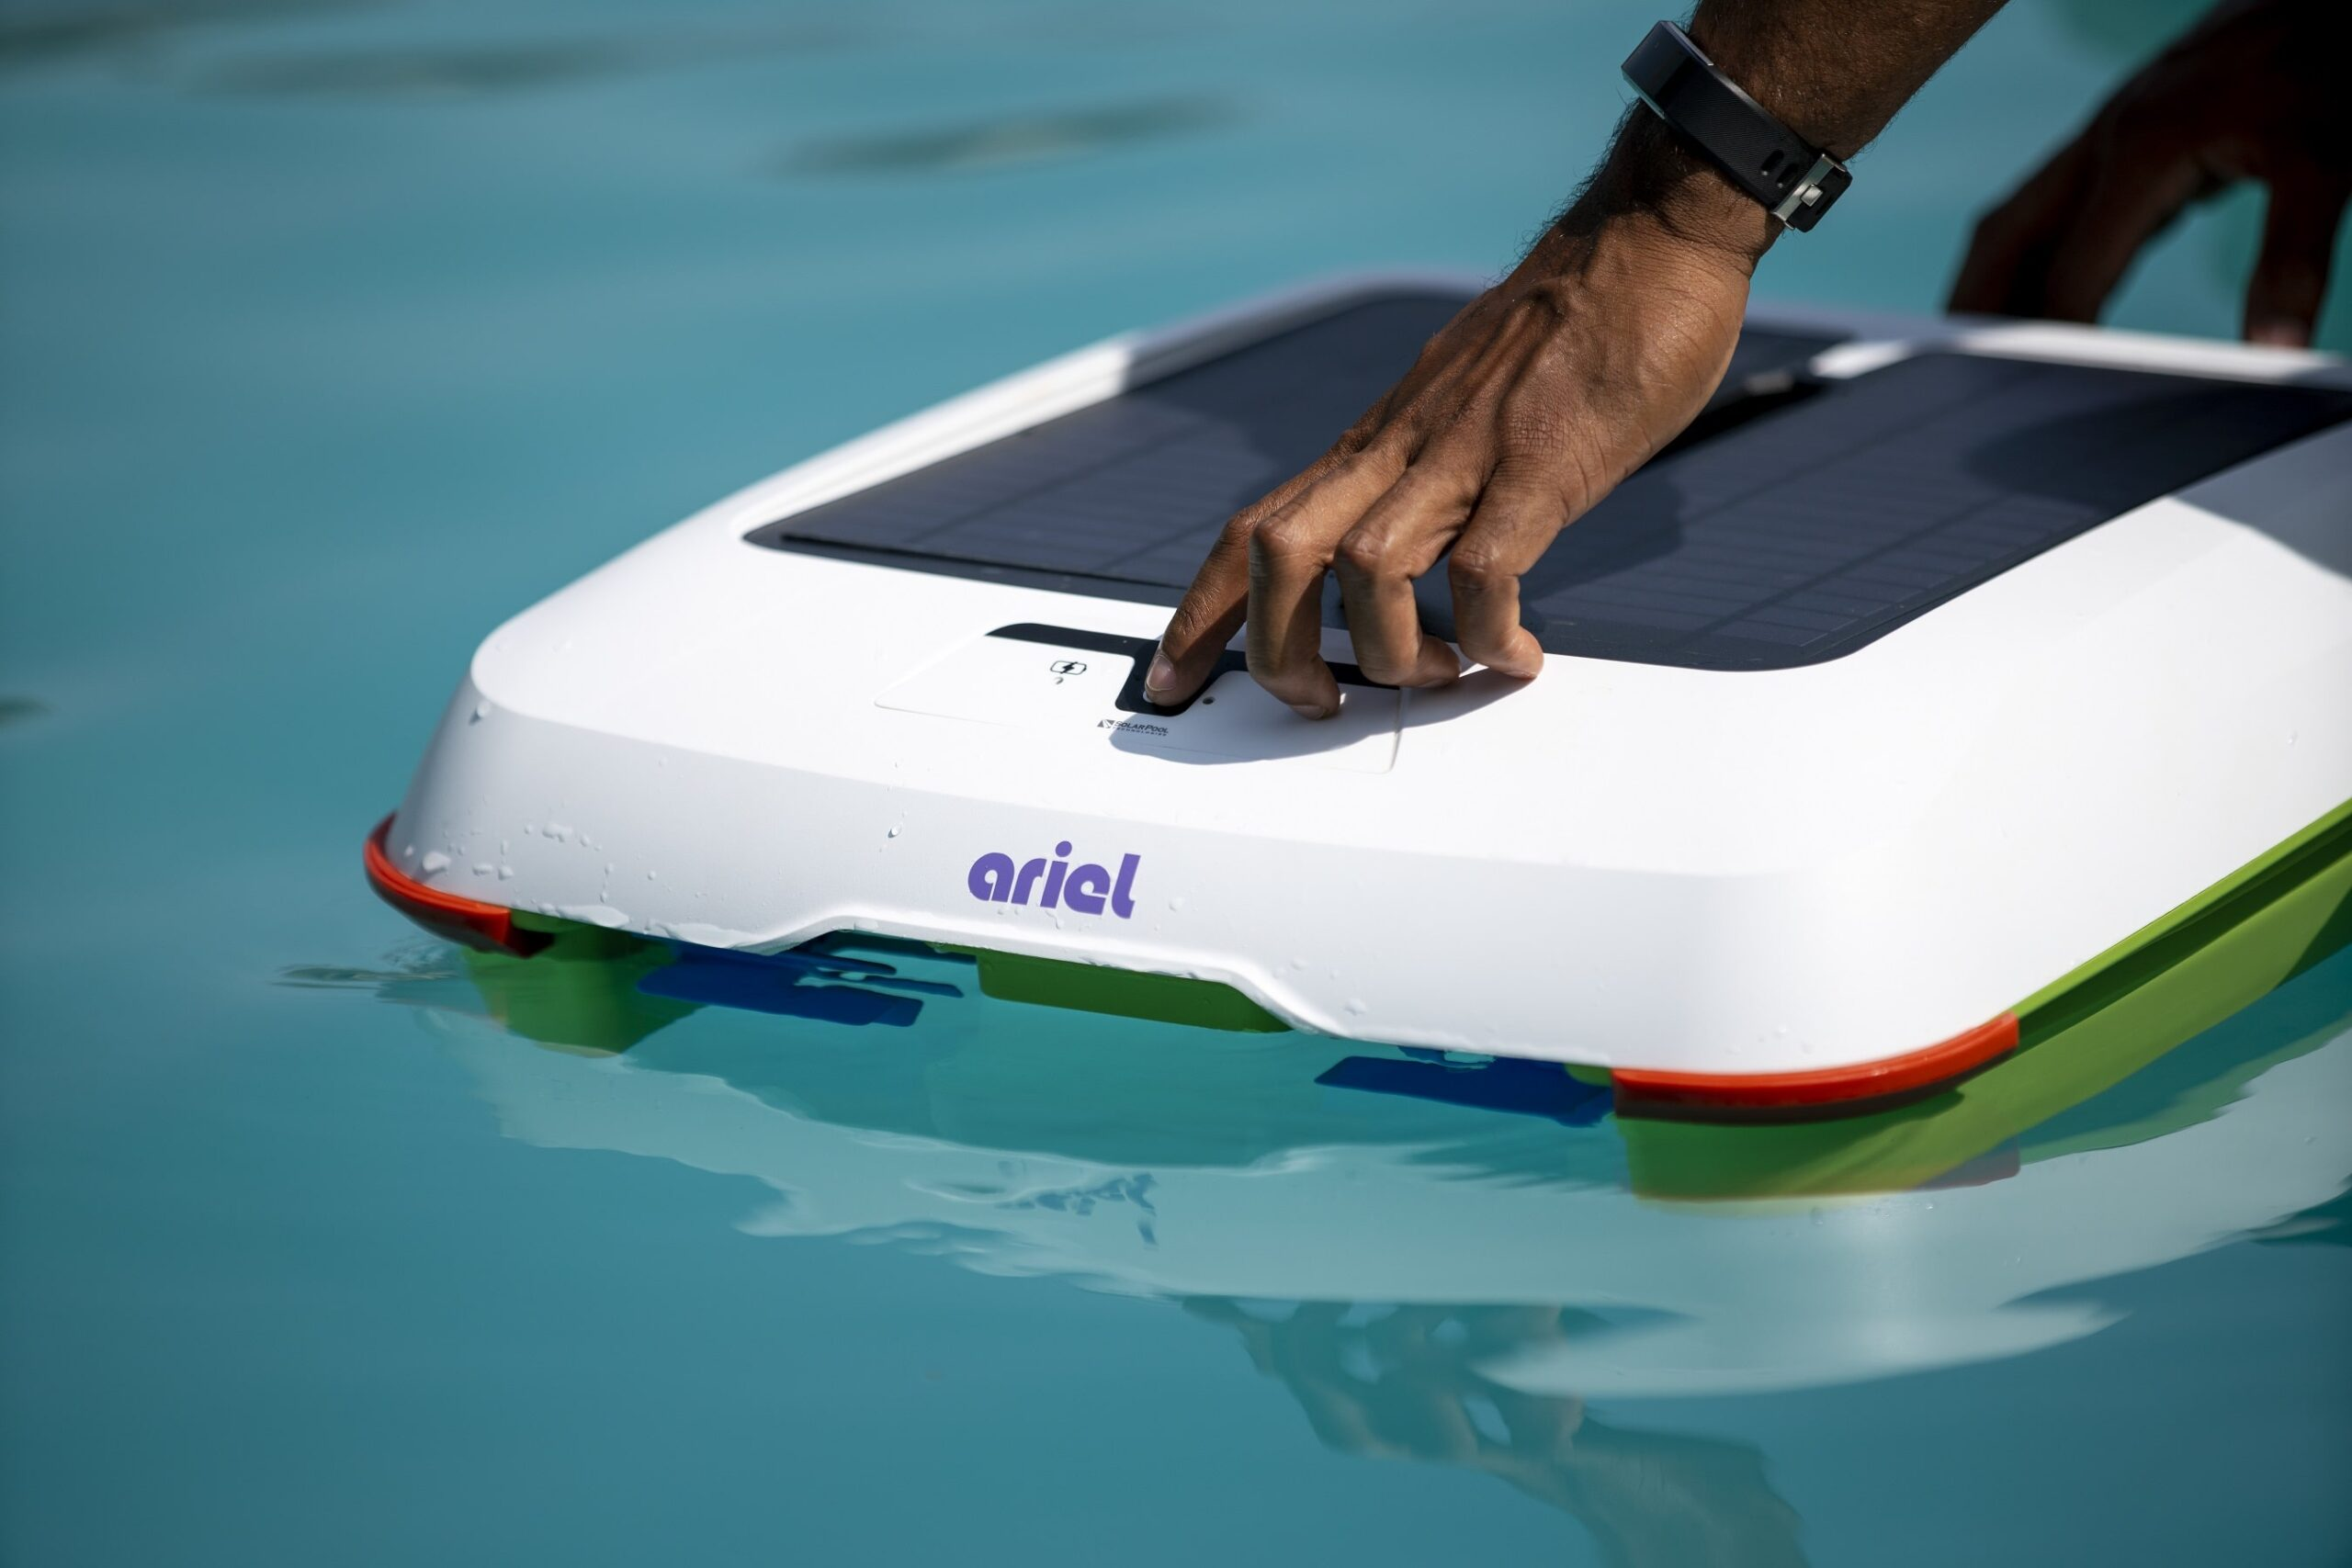 The Ariel Robot Pool Cleaner Keeps Your Pool Free of Debris